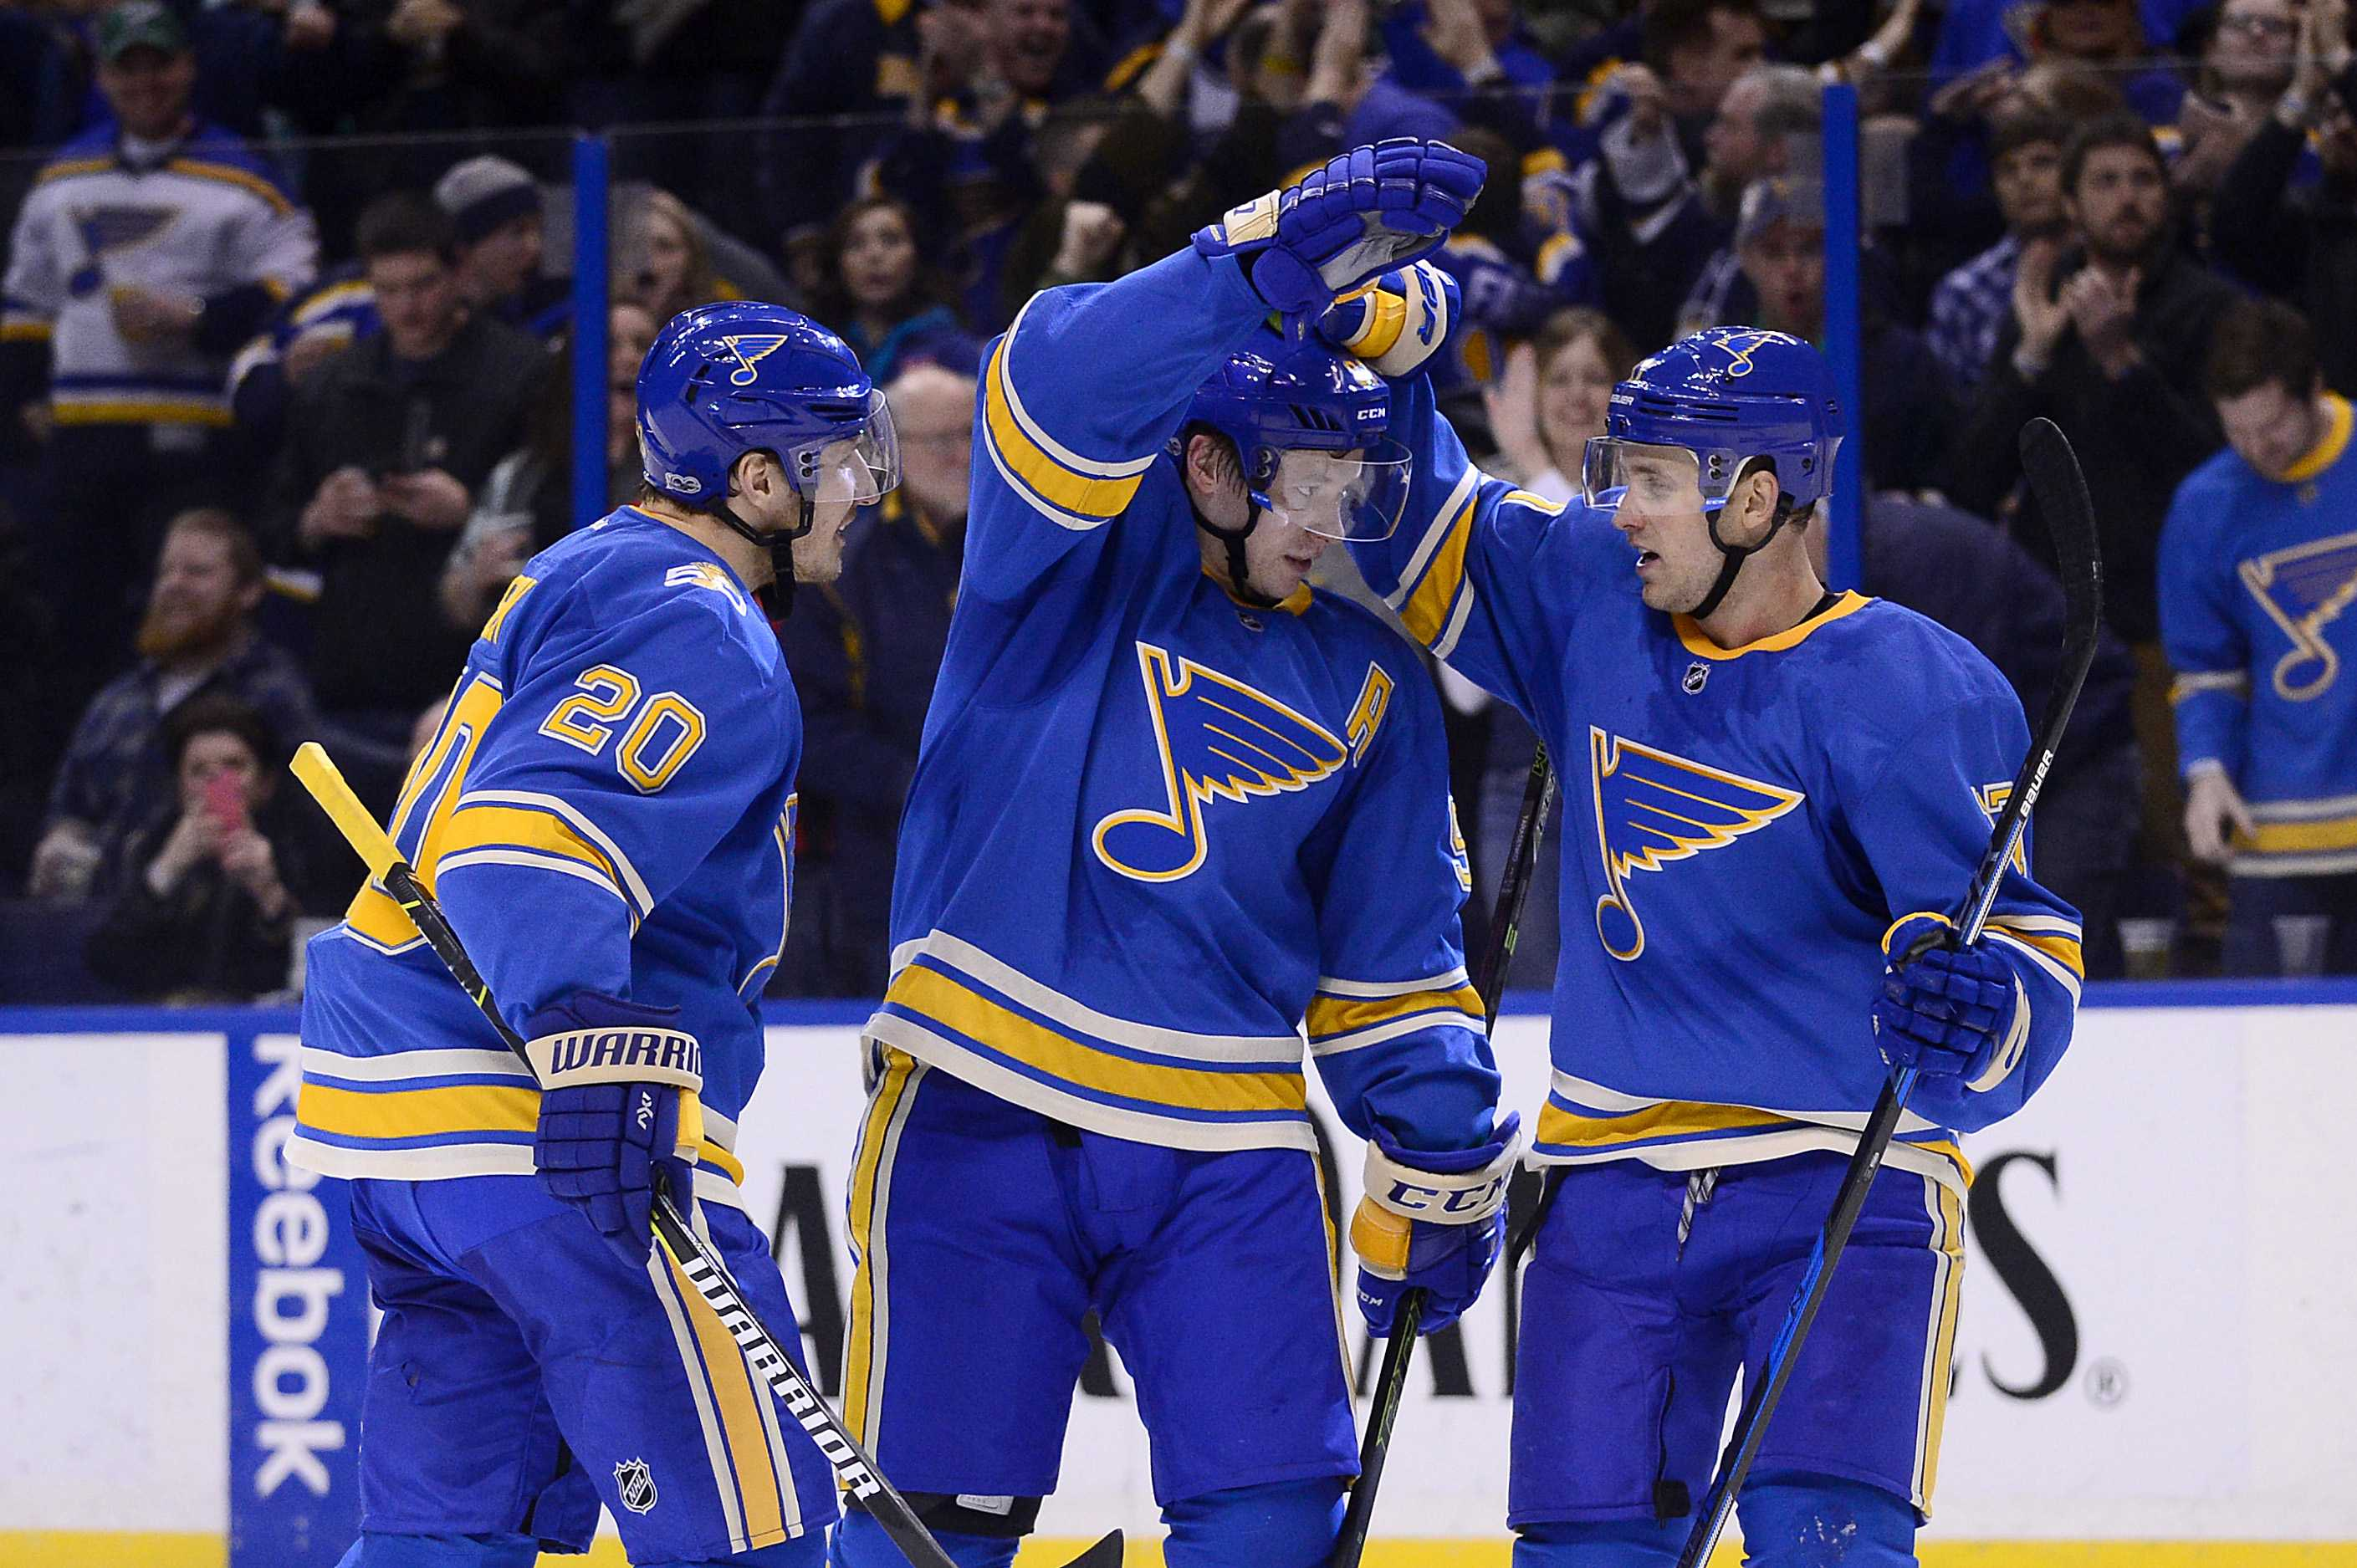 St. Louis: The Not-So-Blues Have Claimed 10 Straight